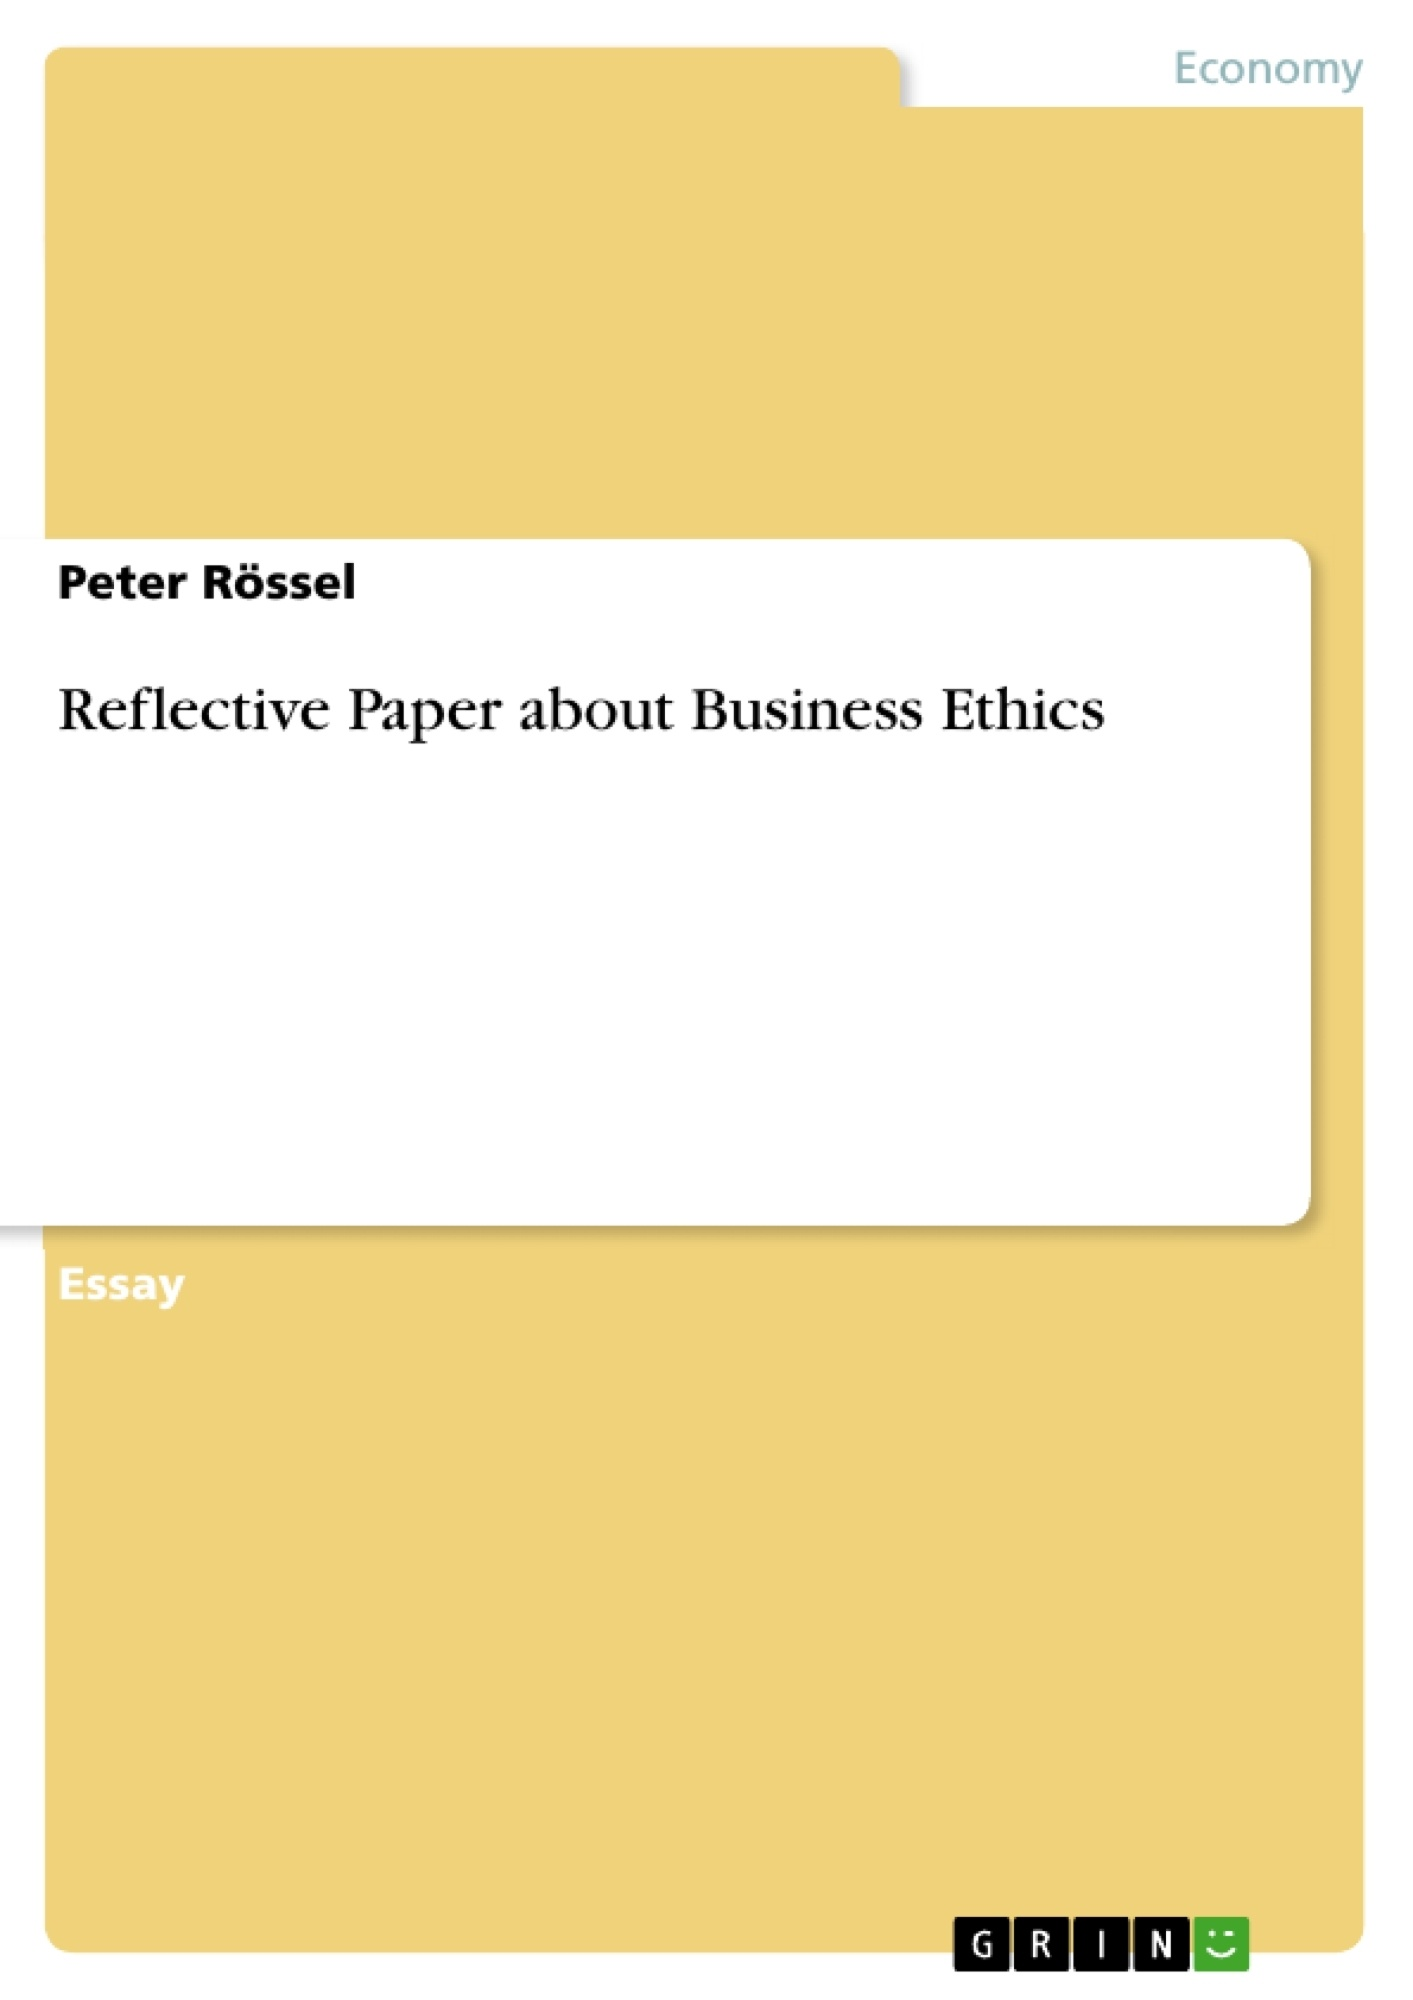 grin  reflective paper about business ethics upload your own papers earn money and win an iphone x